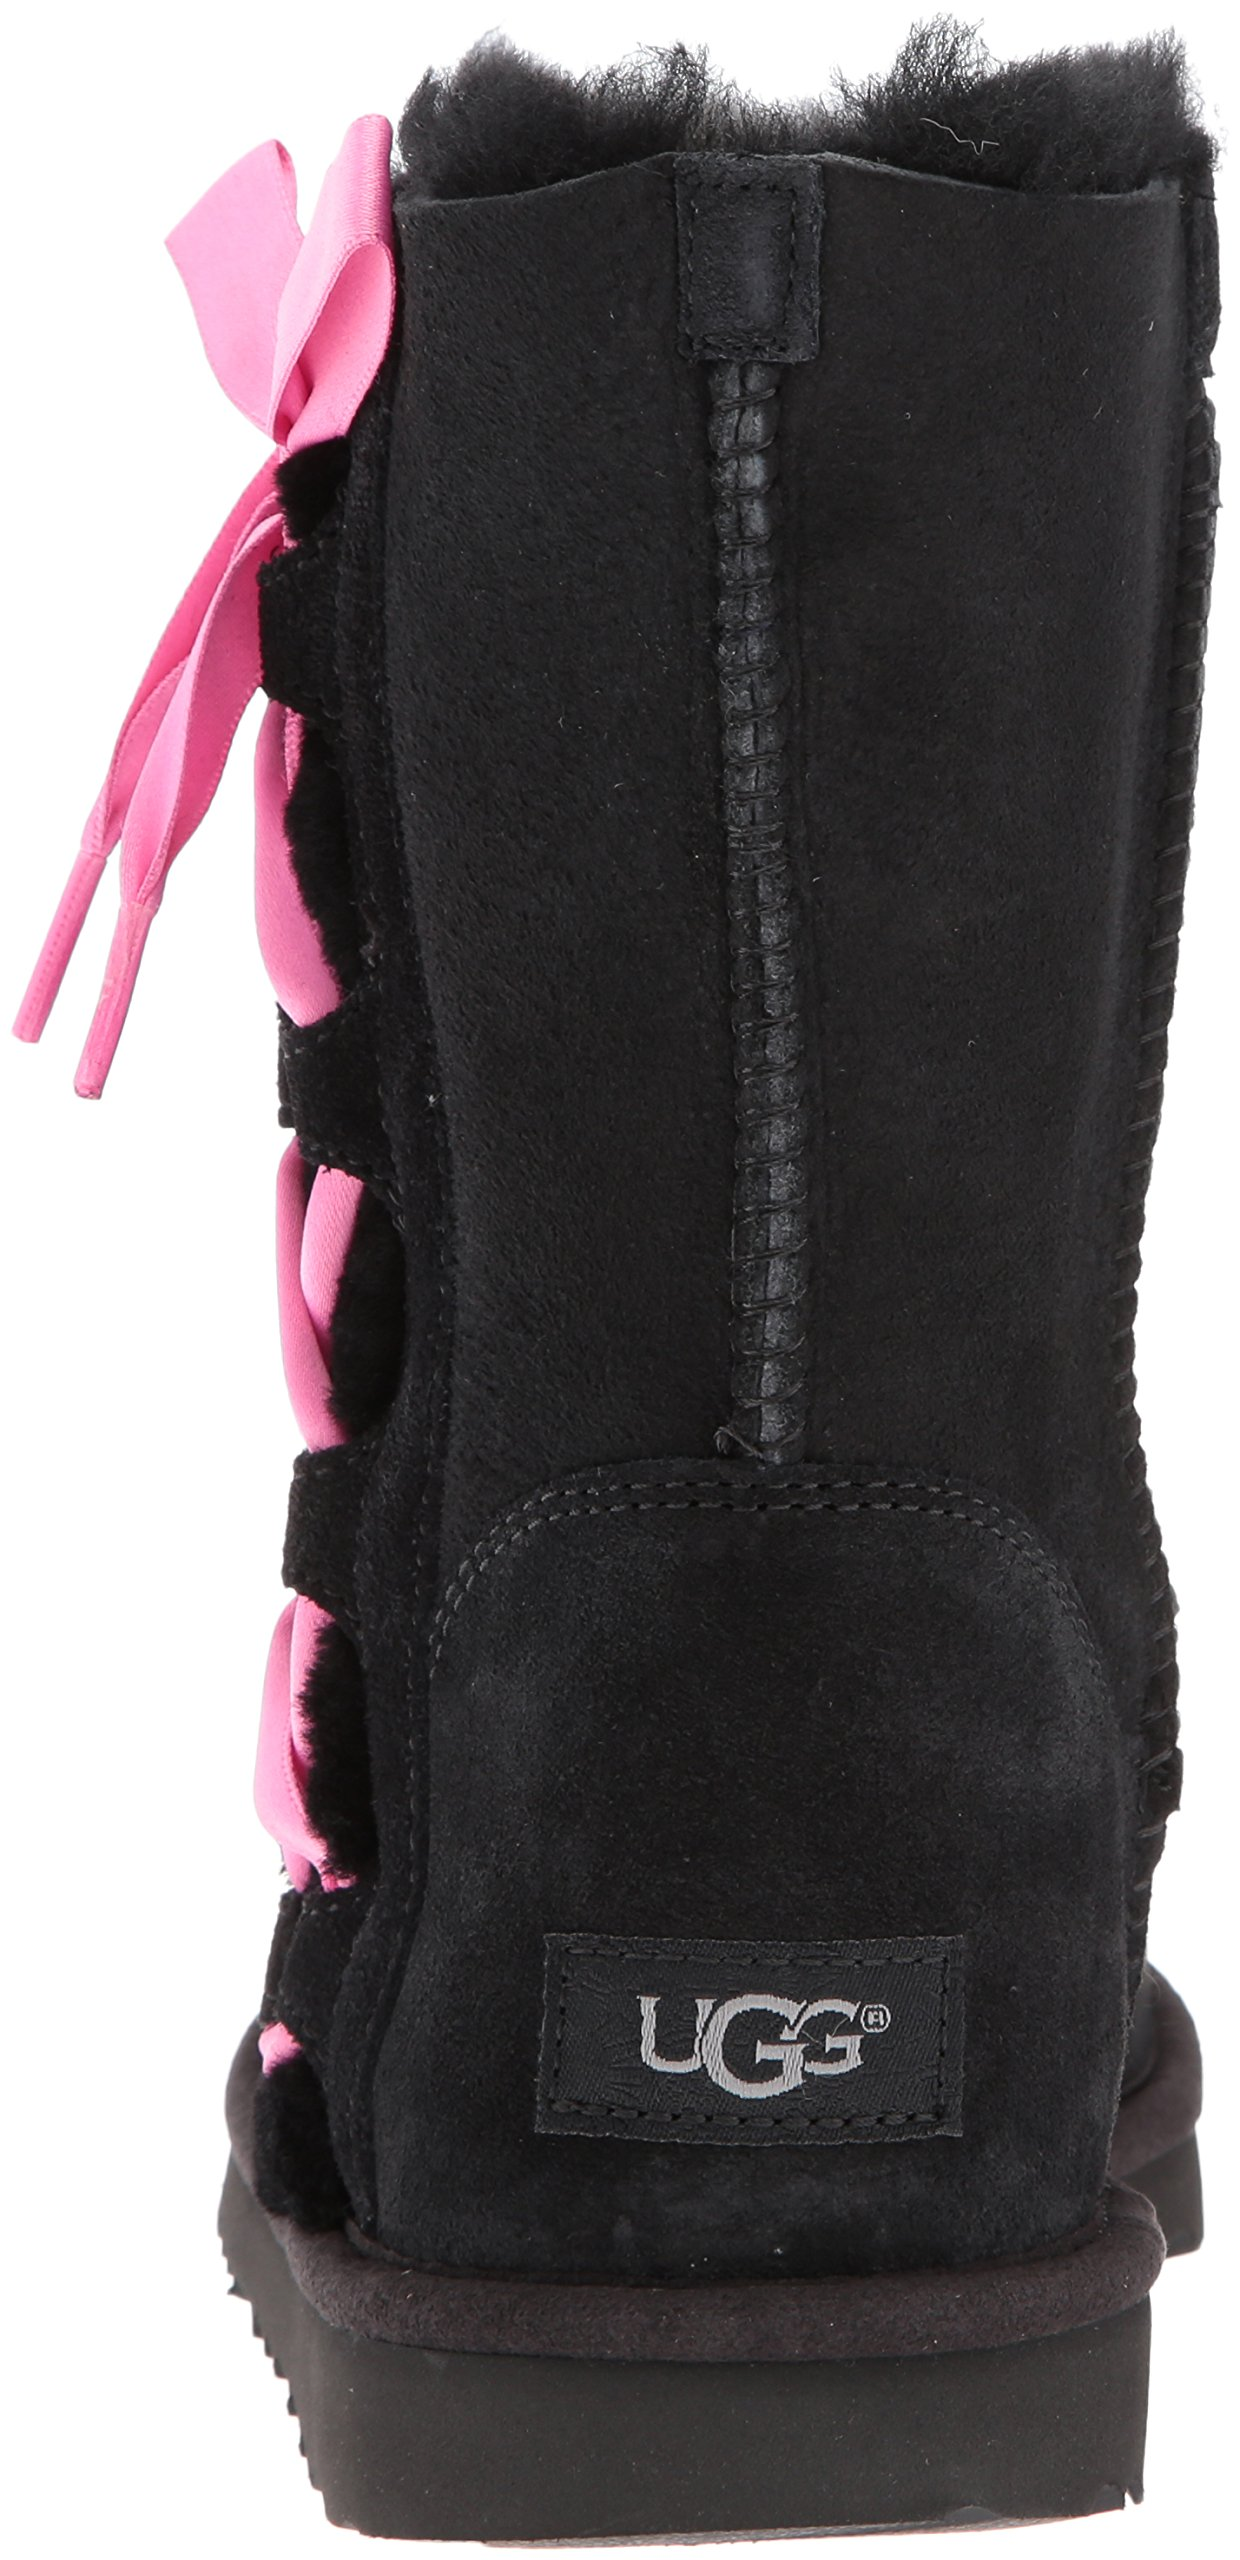 UGG Girls K Pala Pull-on Boot, Black, 1 M US Little Kid by UGG (Image #2)